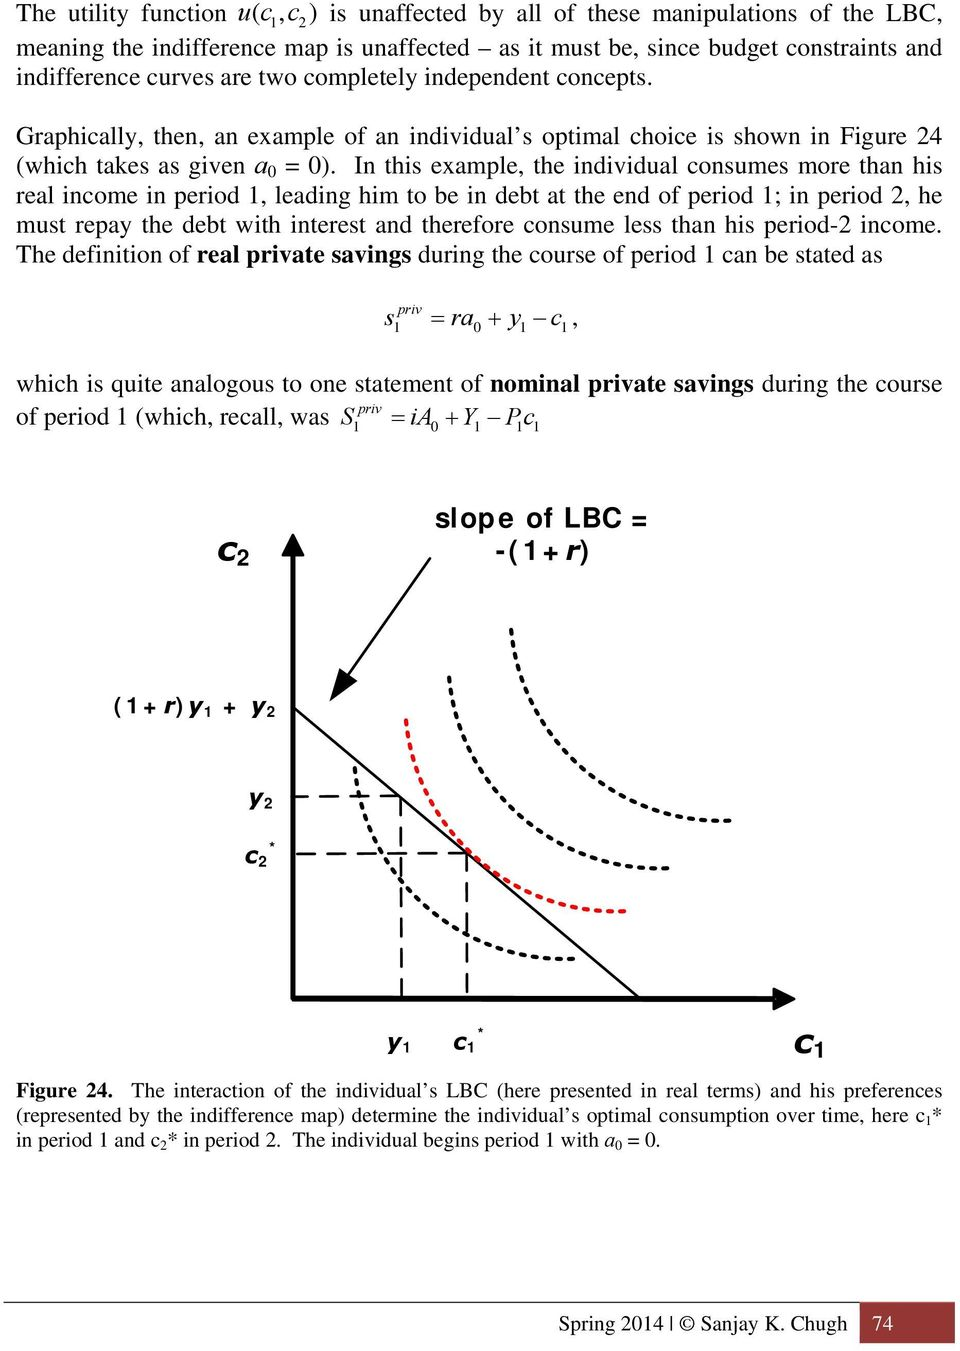 In this example, the individual consumes more than his real income in period, leading him to be in debt at the end of period ; in period, he must repay the debt with interest and therefore consume